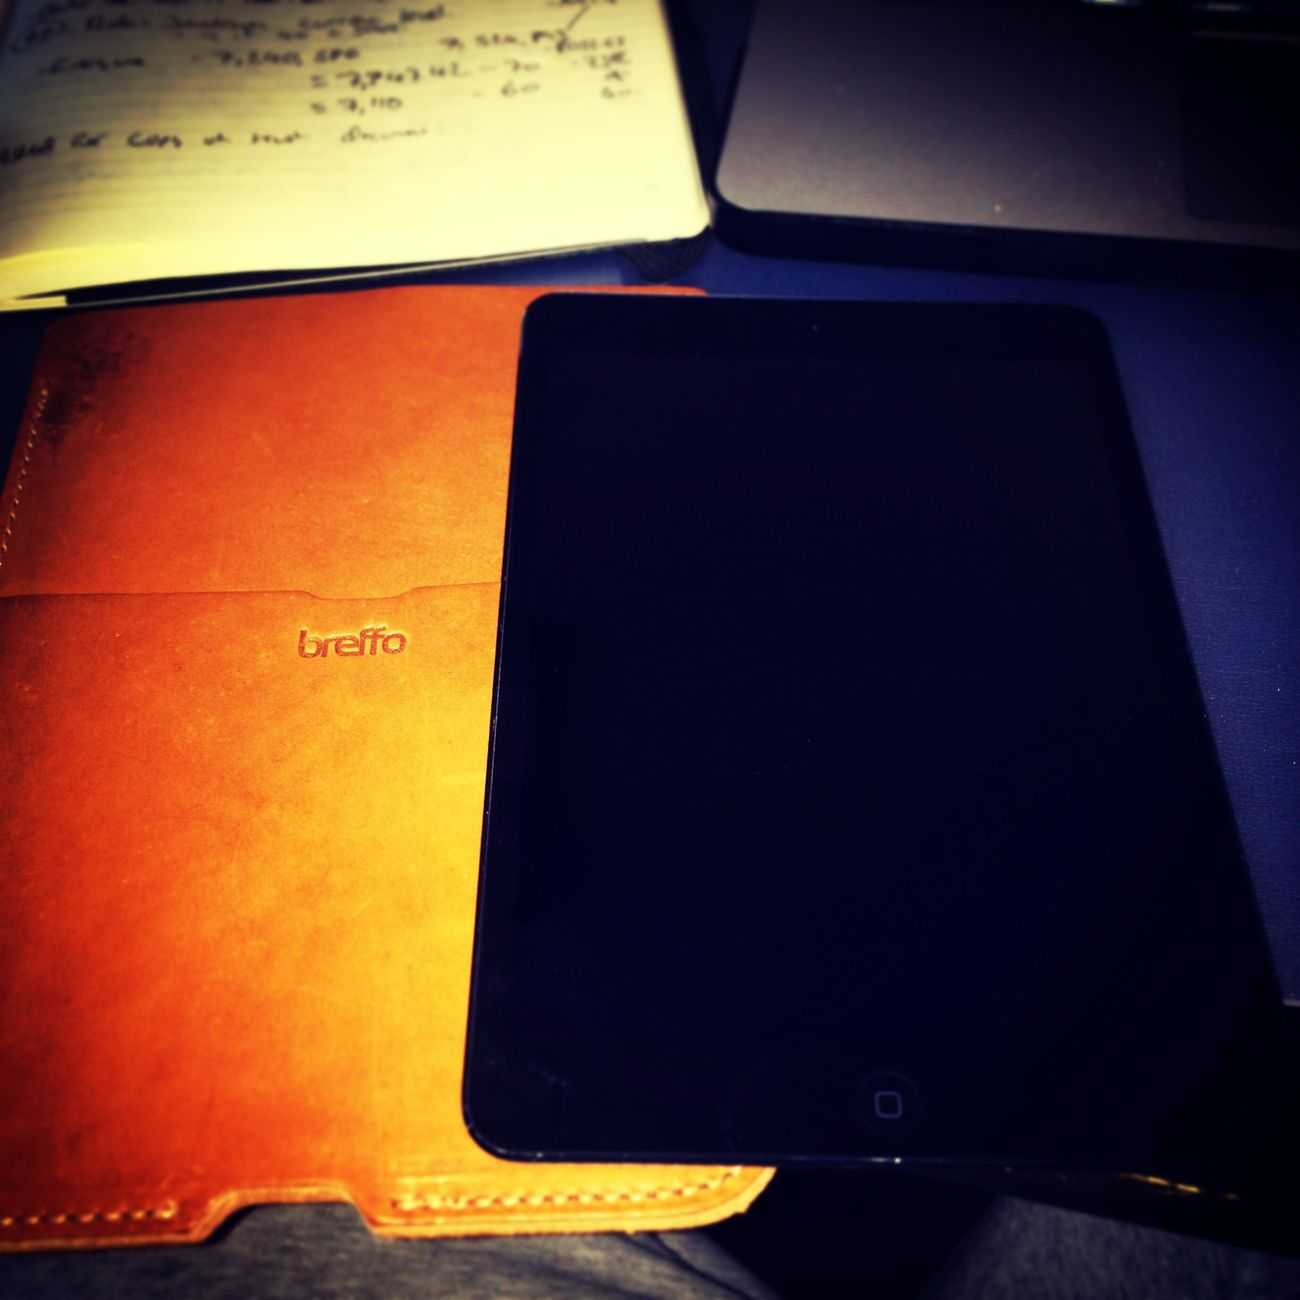 My Breffo iPad mini case